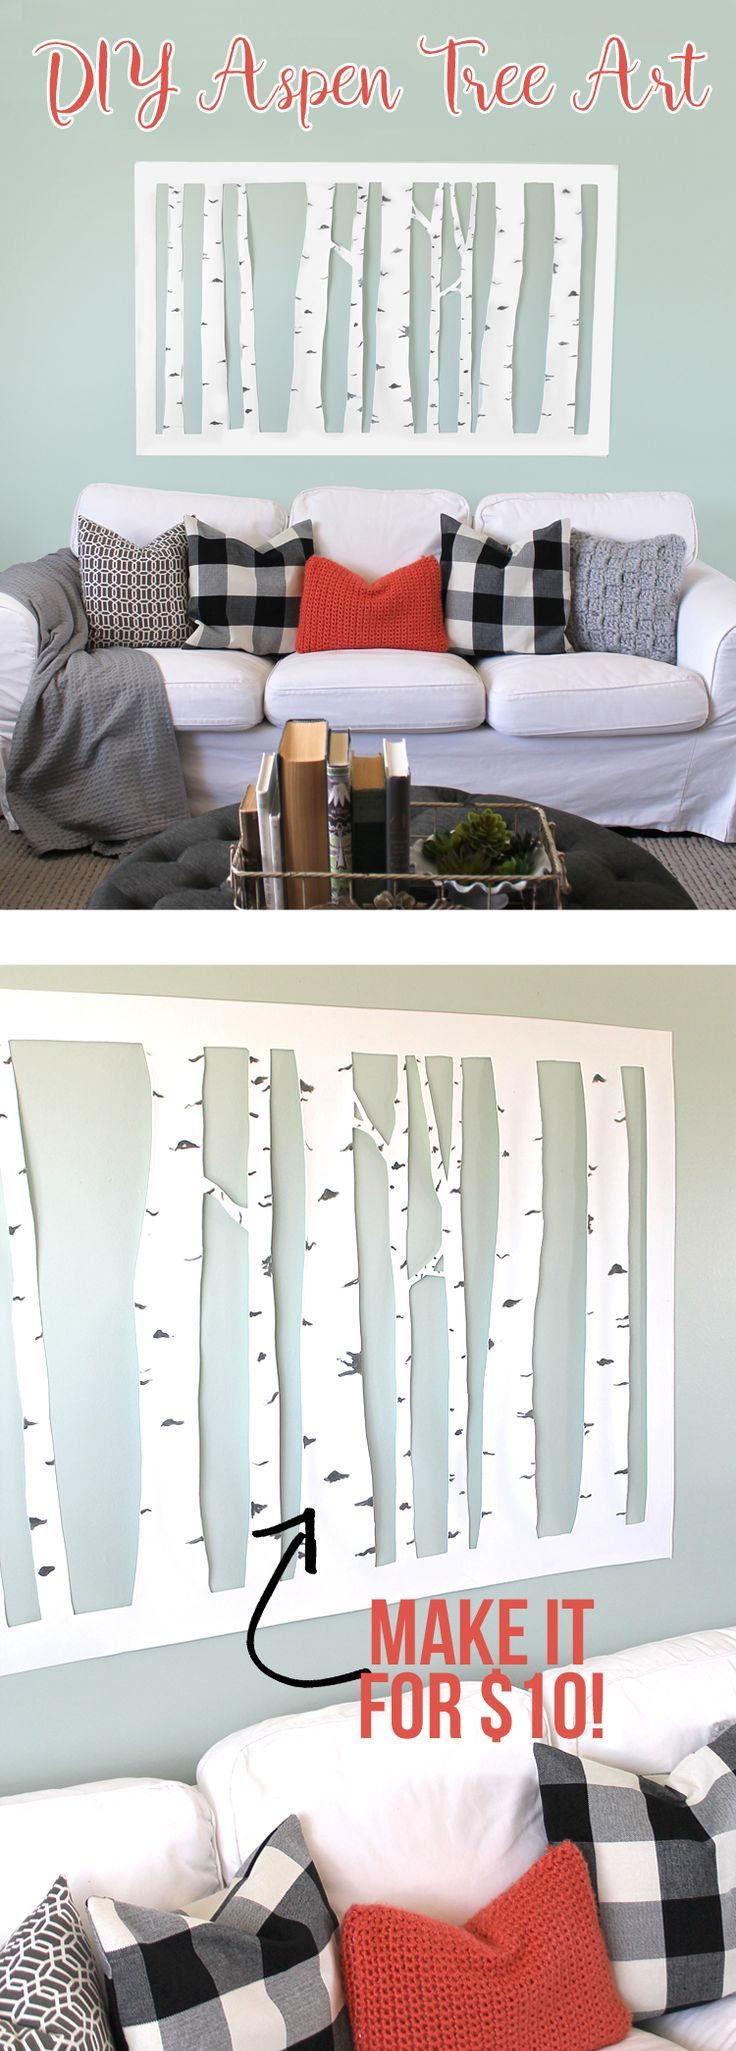 Make this large scale DIY aspen tree wall art in about an hour for less than $10. DIY cheap wall art tutorial. Love this!